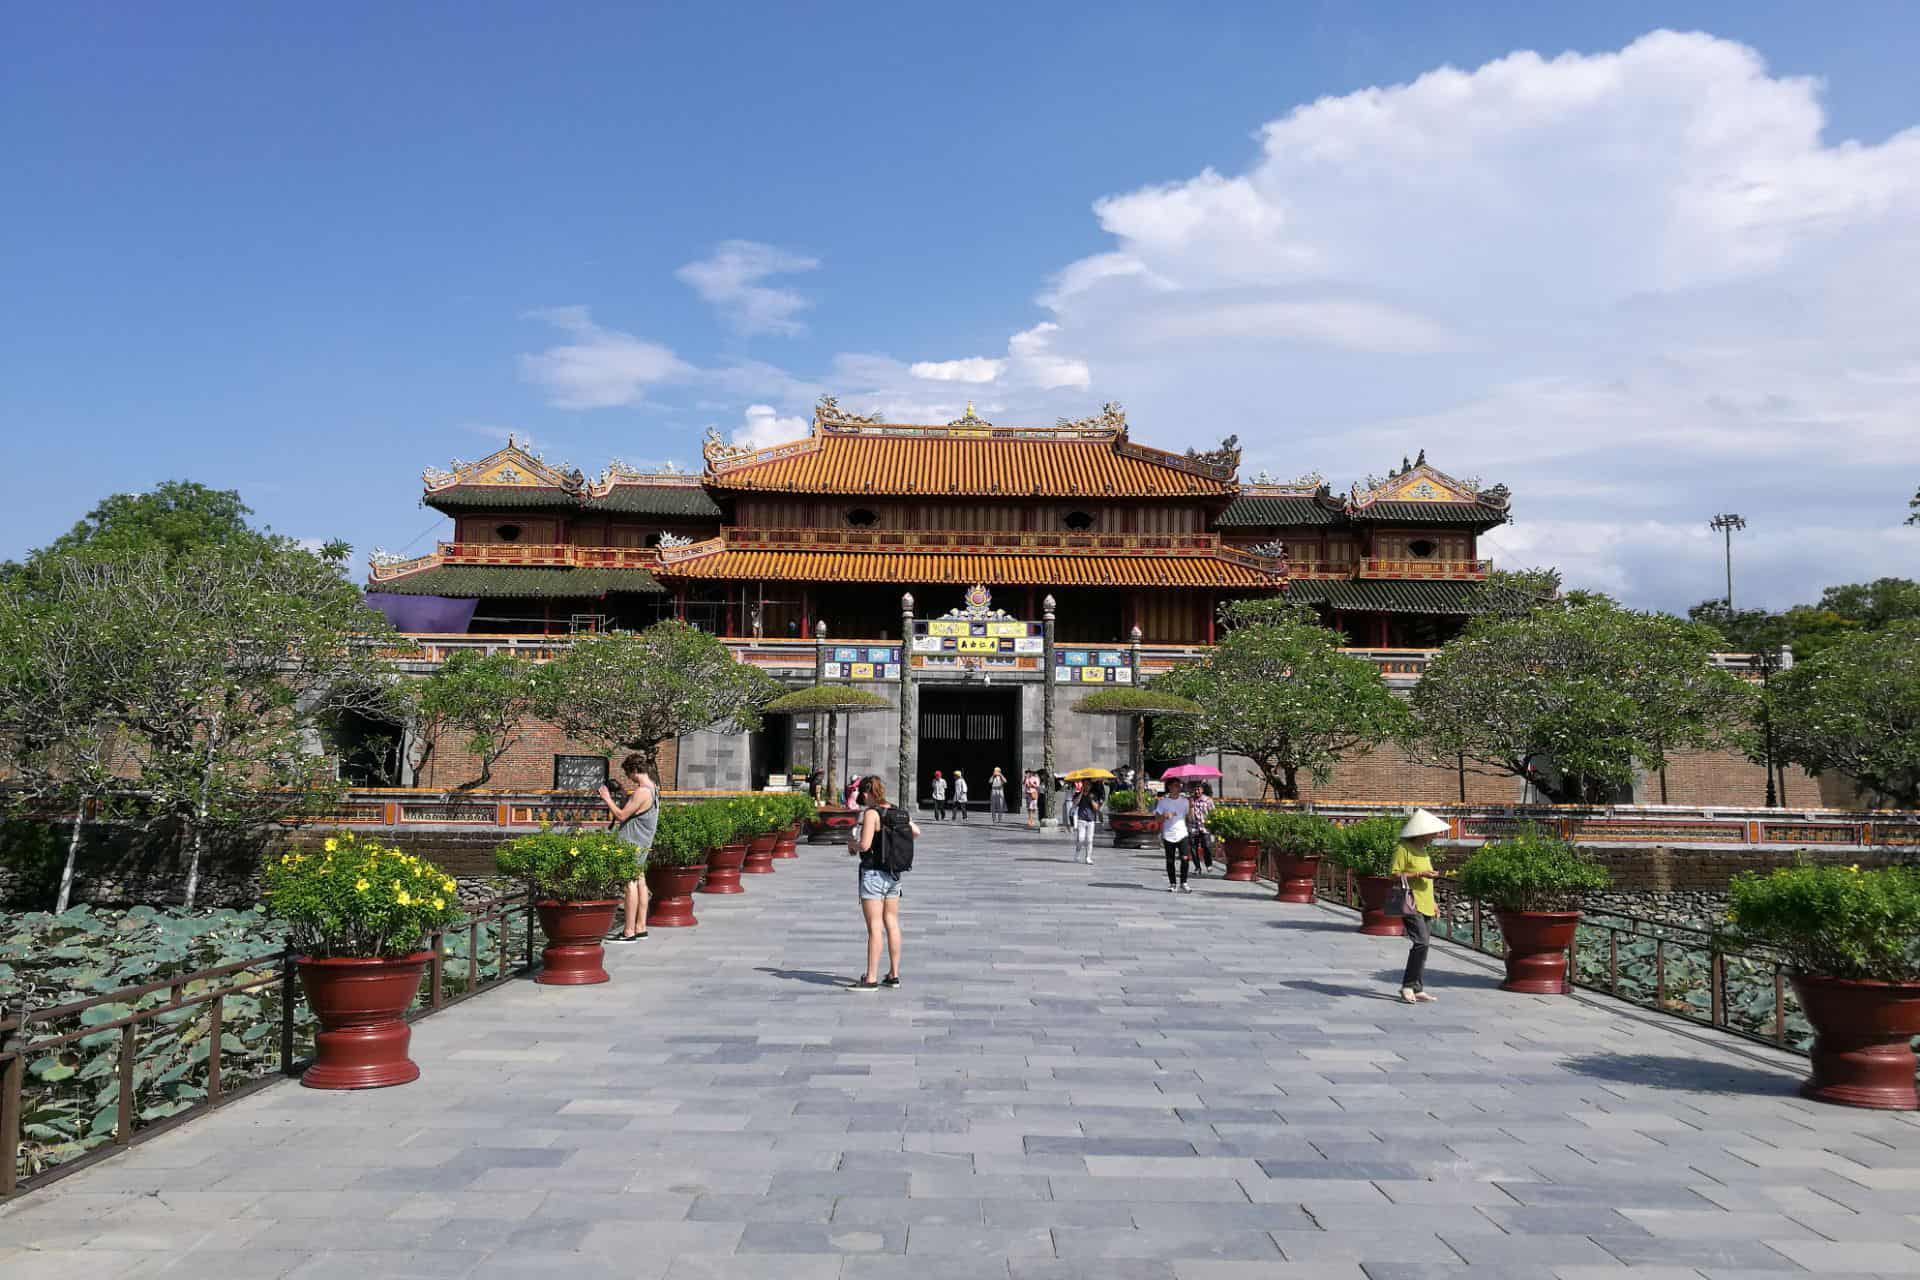 What to see and do in Thai Hoa palace